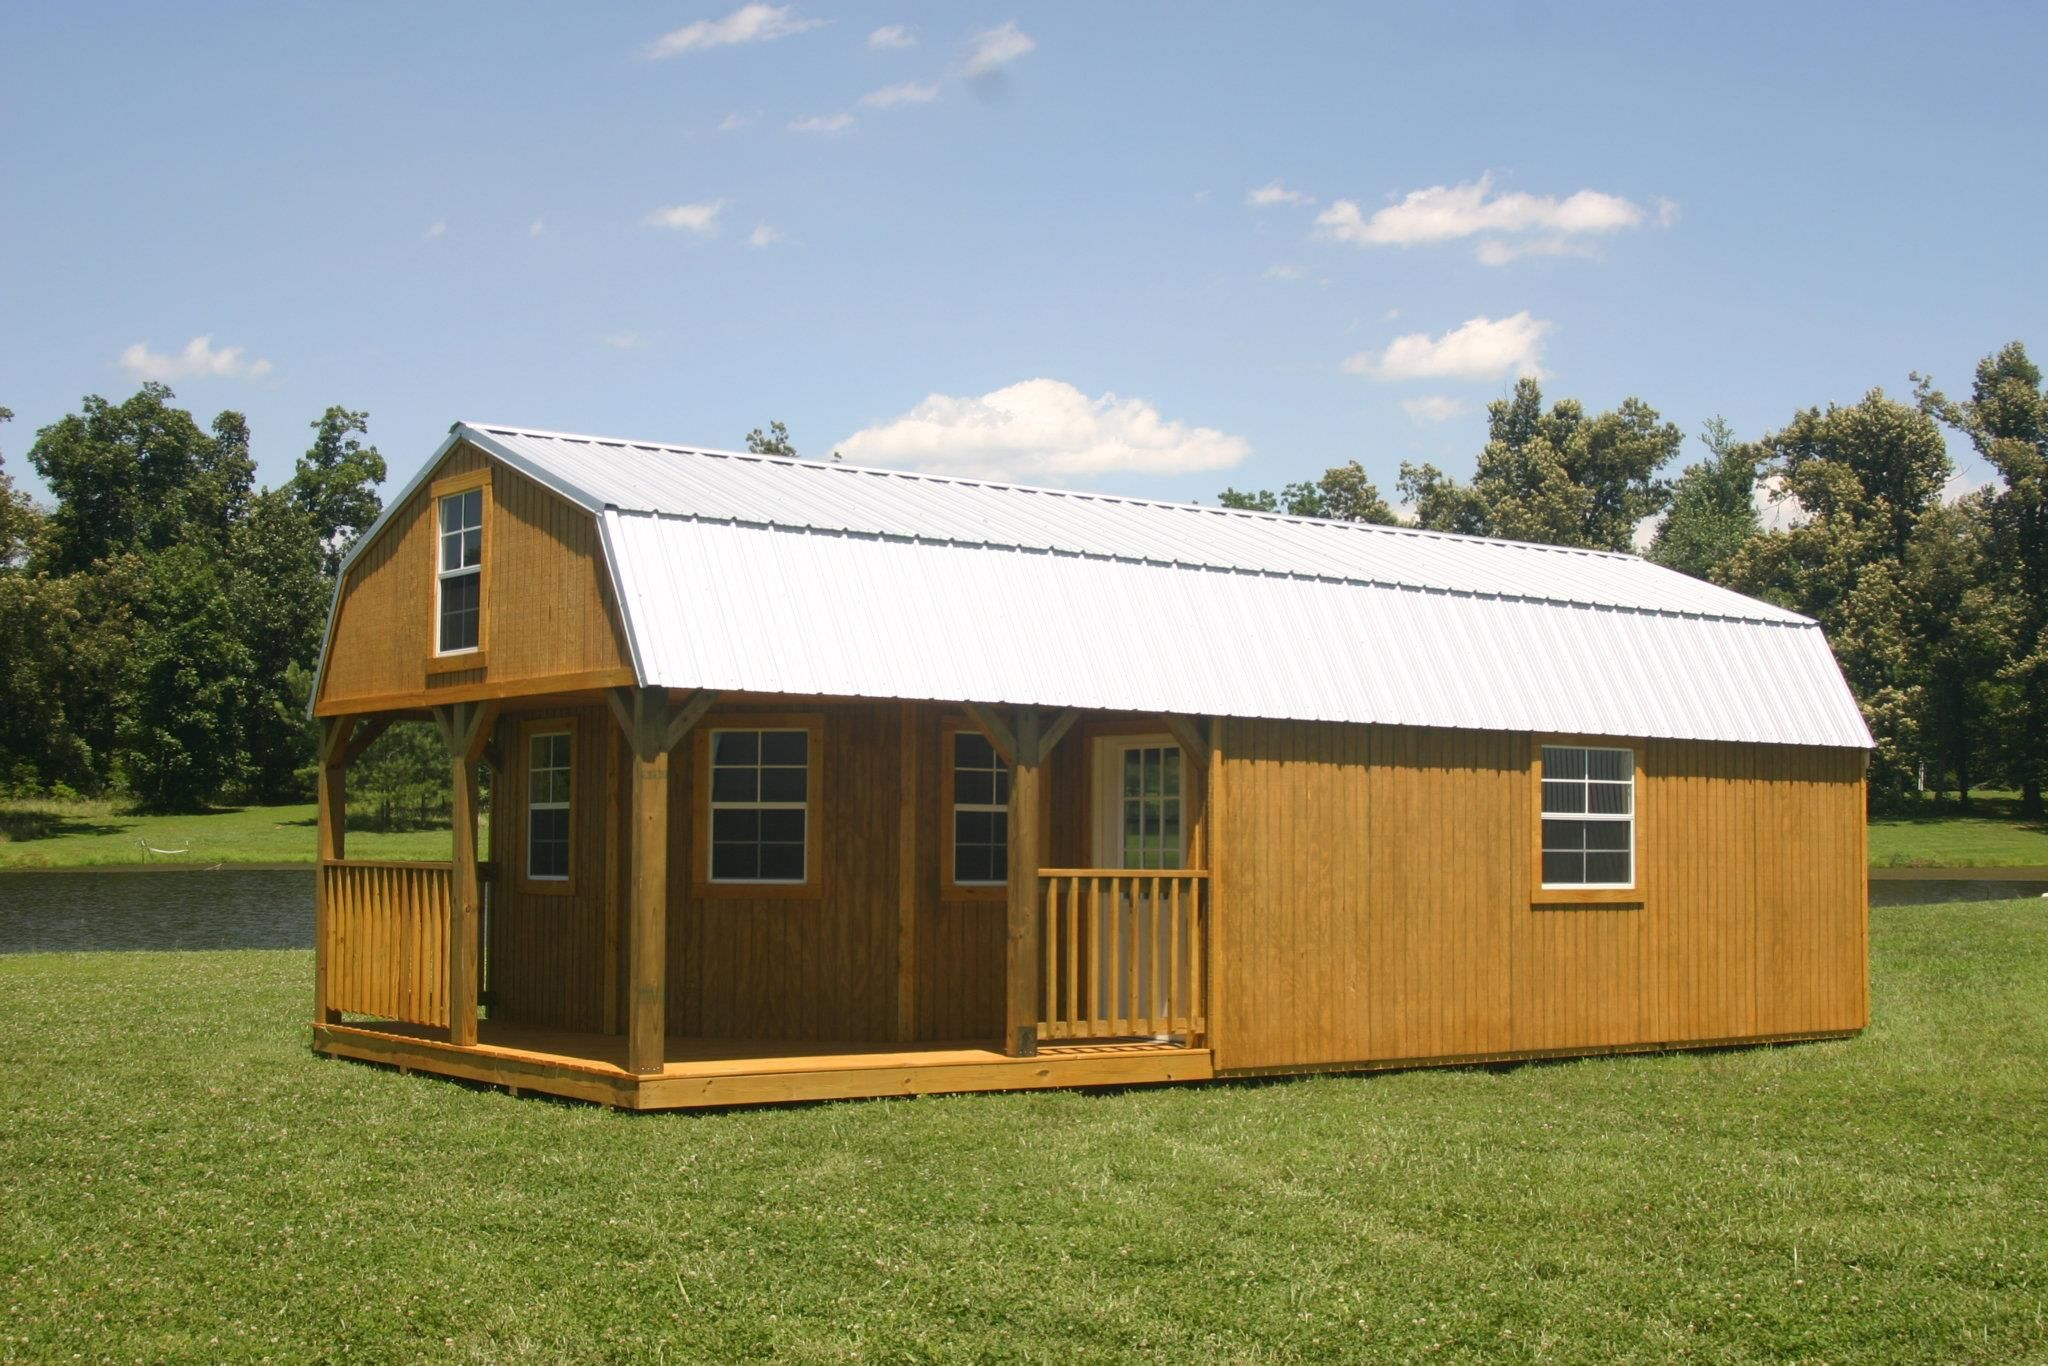 Southern Homes Of Statesboro Derkesn Portable Buildings